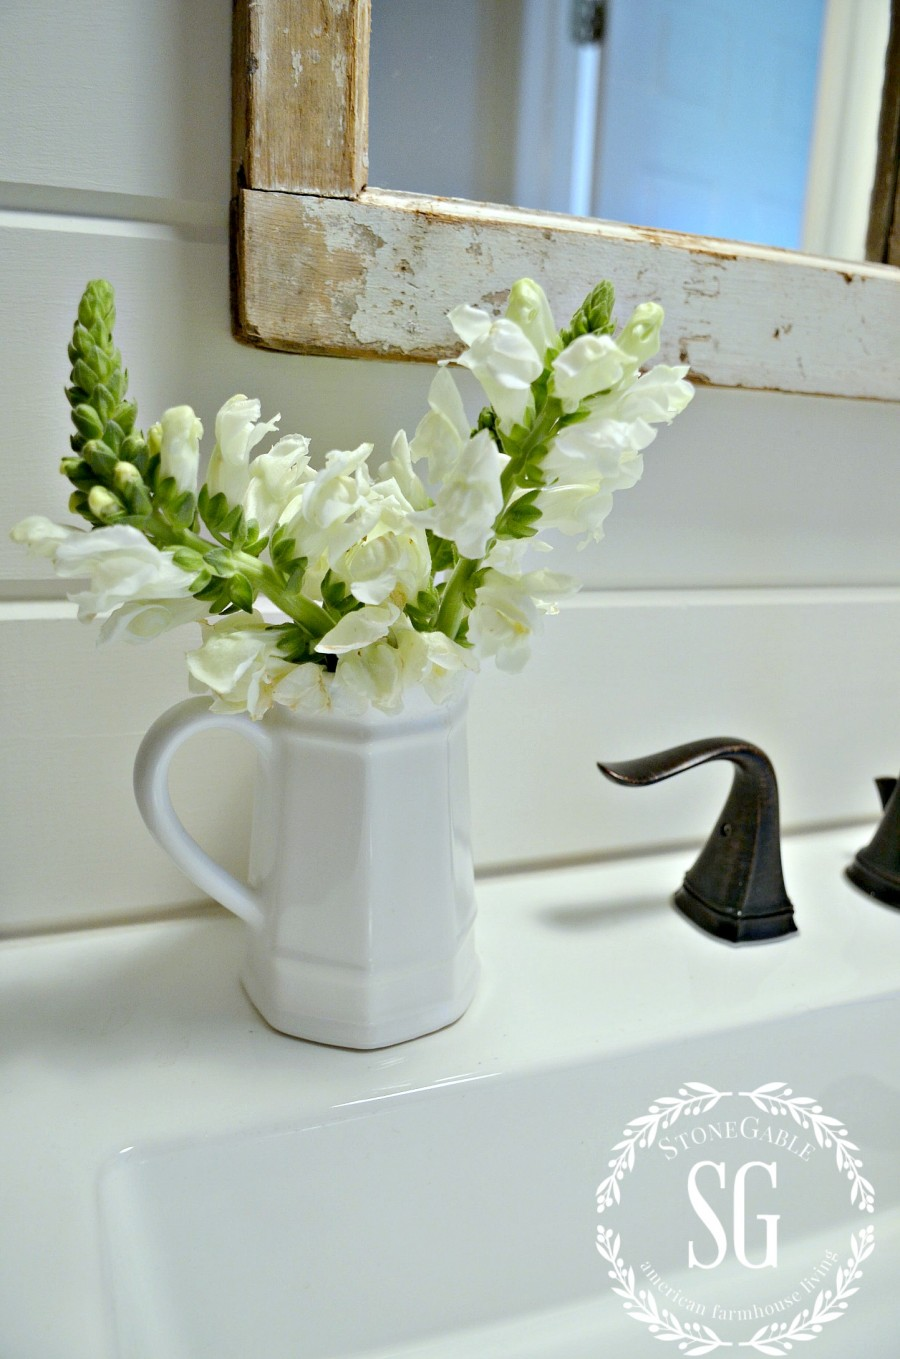 FARMHOUSE POWDER ROOM REVEAL- flowers on sink-stonegableblog.com